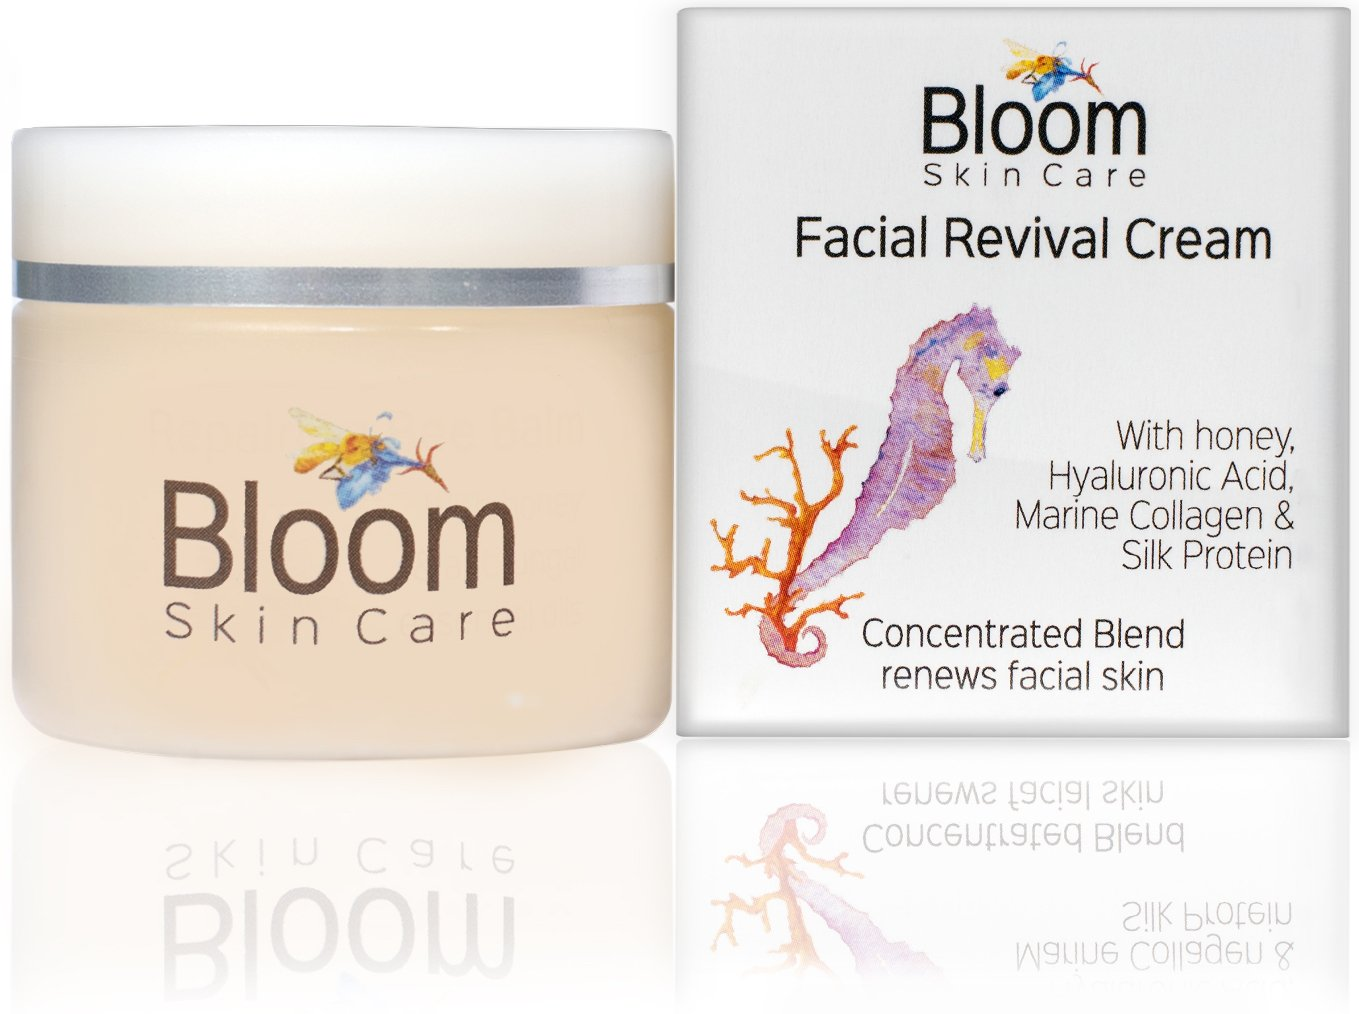 Bloom Skin Care Facial Revival Cream 1.69oz - Hyaluronic Acid Tightening Face Cream for Women and Men - Paraben and Cruelty Free - Natural Moisturizer for firming skin by Bloom Skin Care